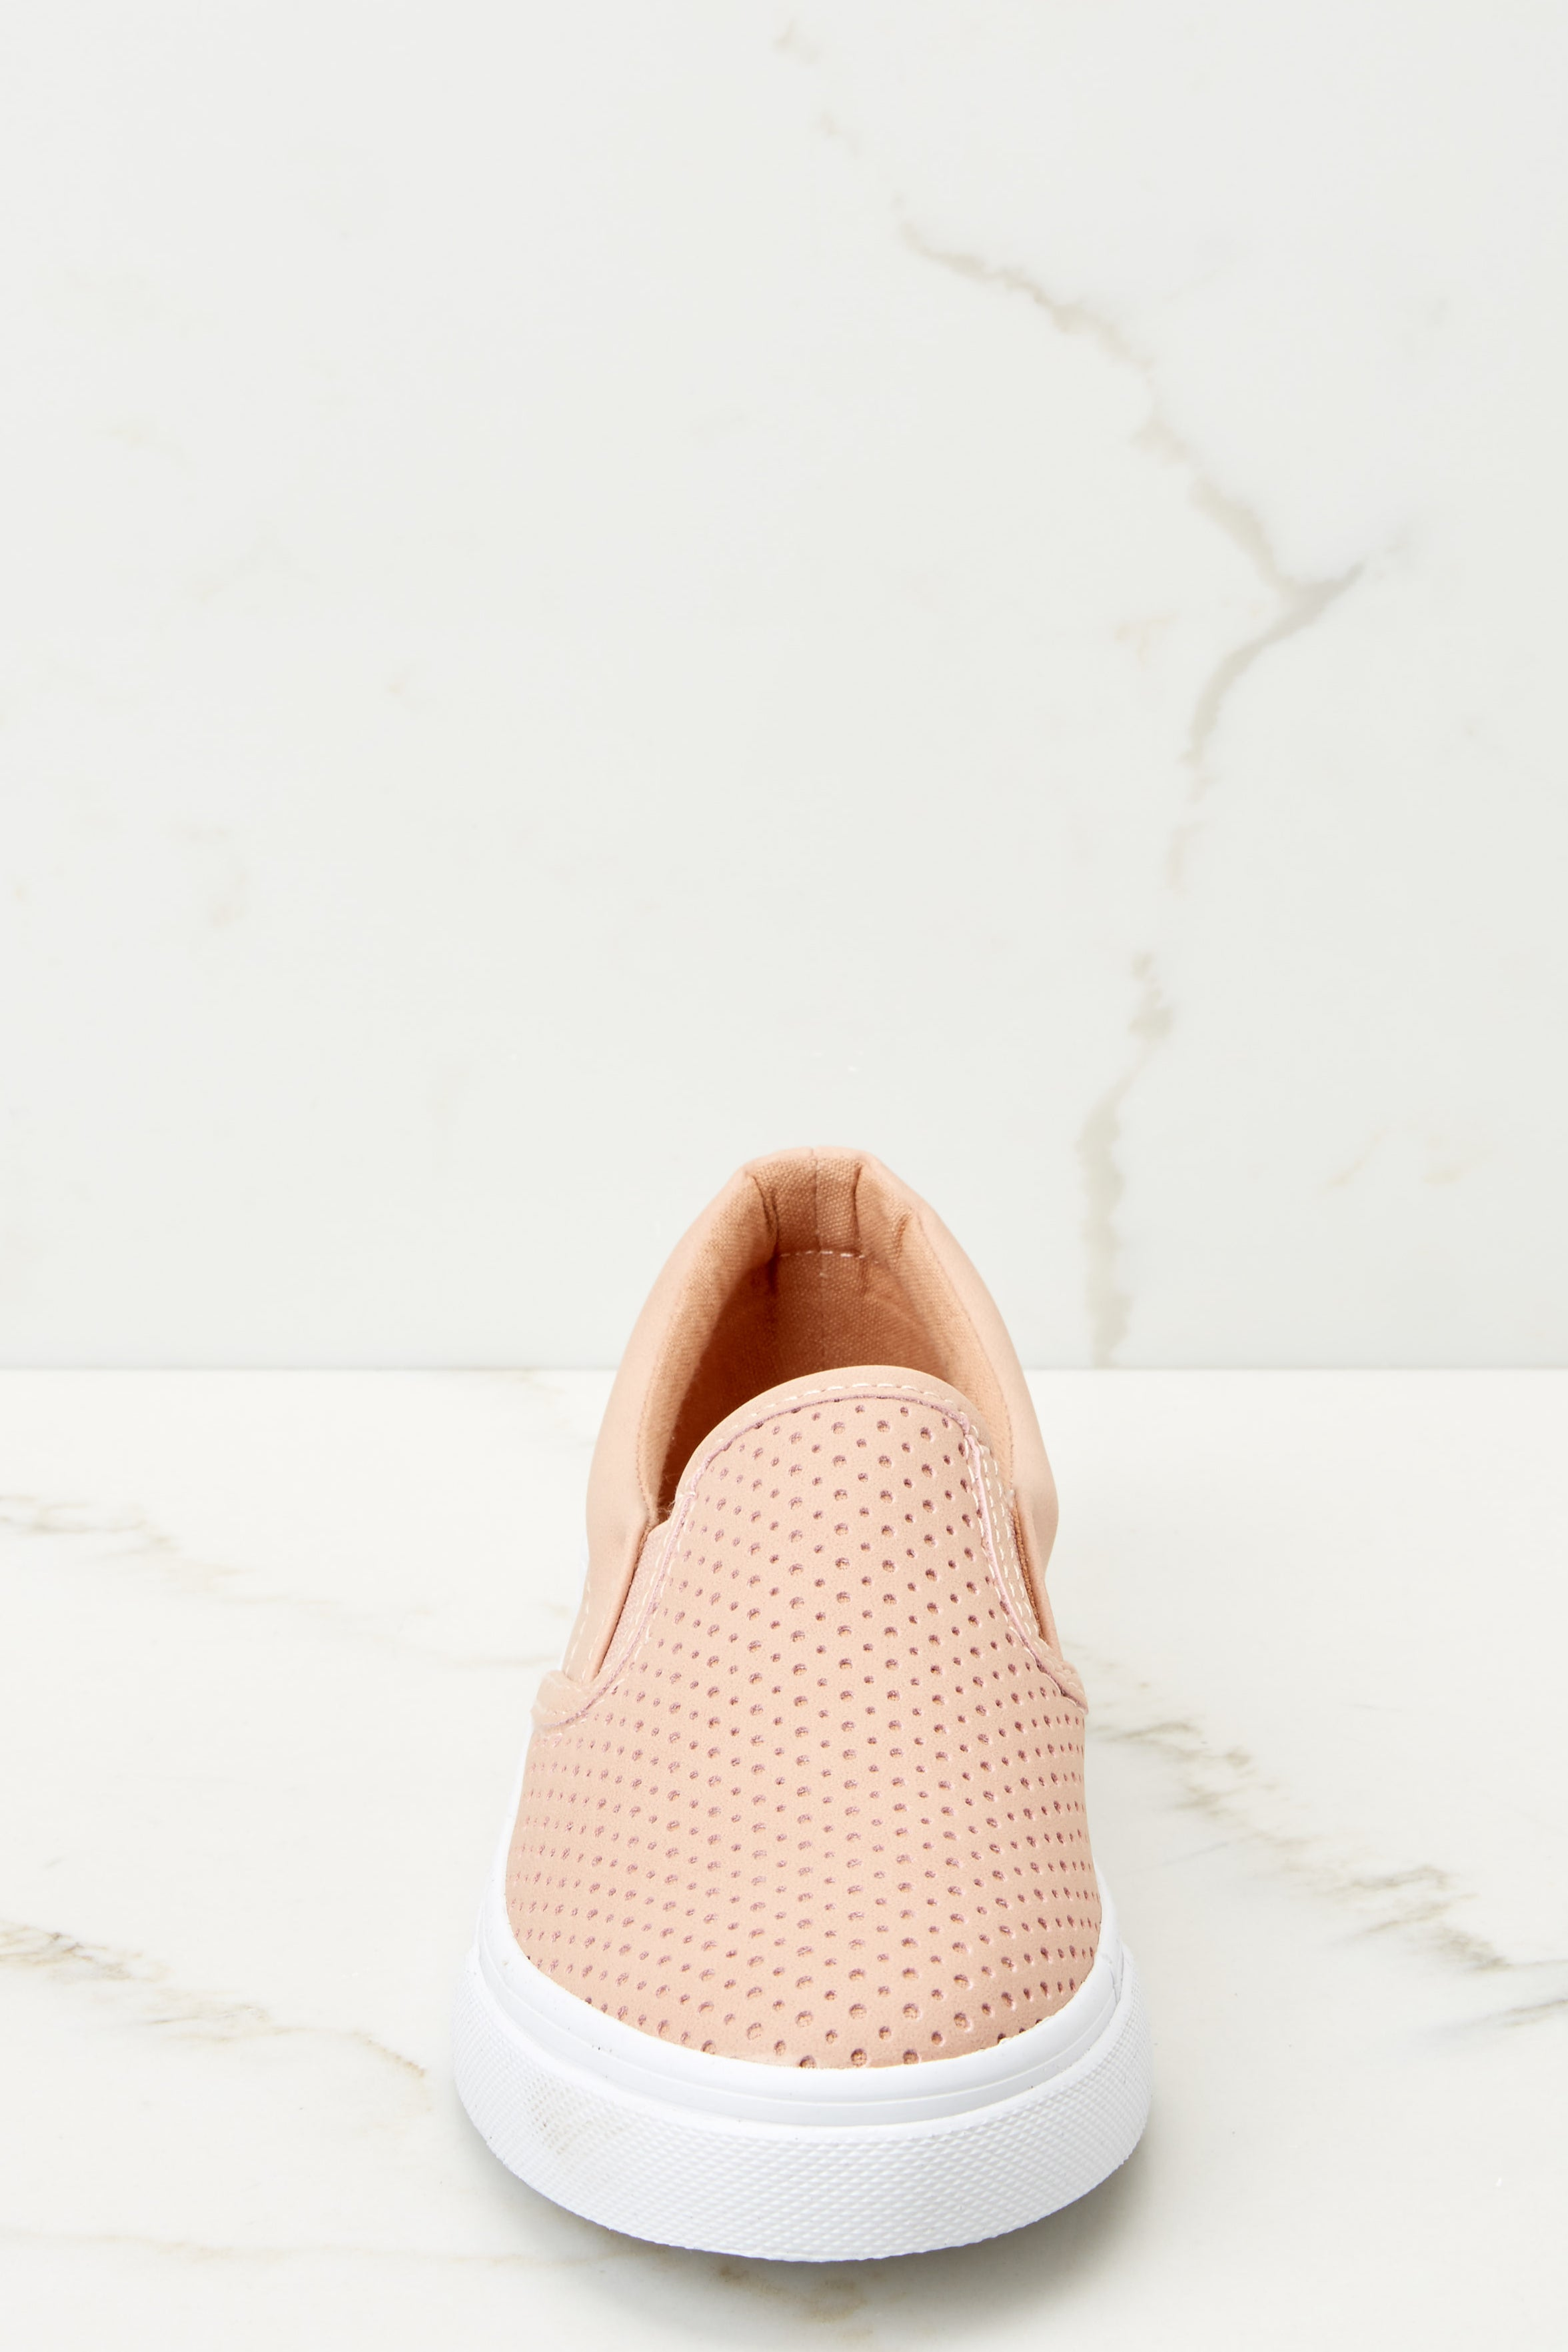 2 One Step Away Light Pink Slip On Sneakers at reddressboutique.com